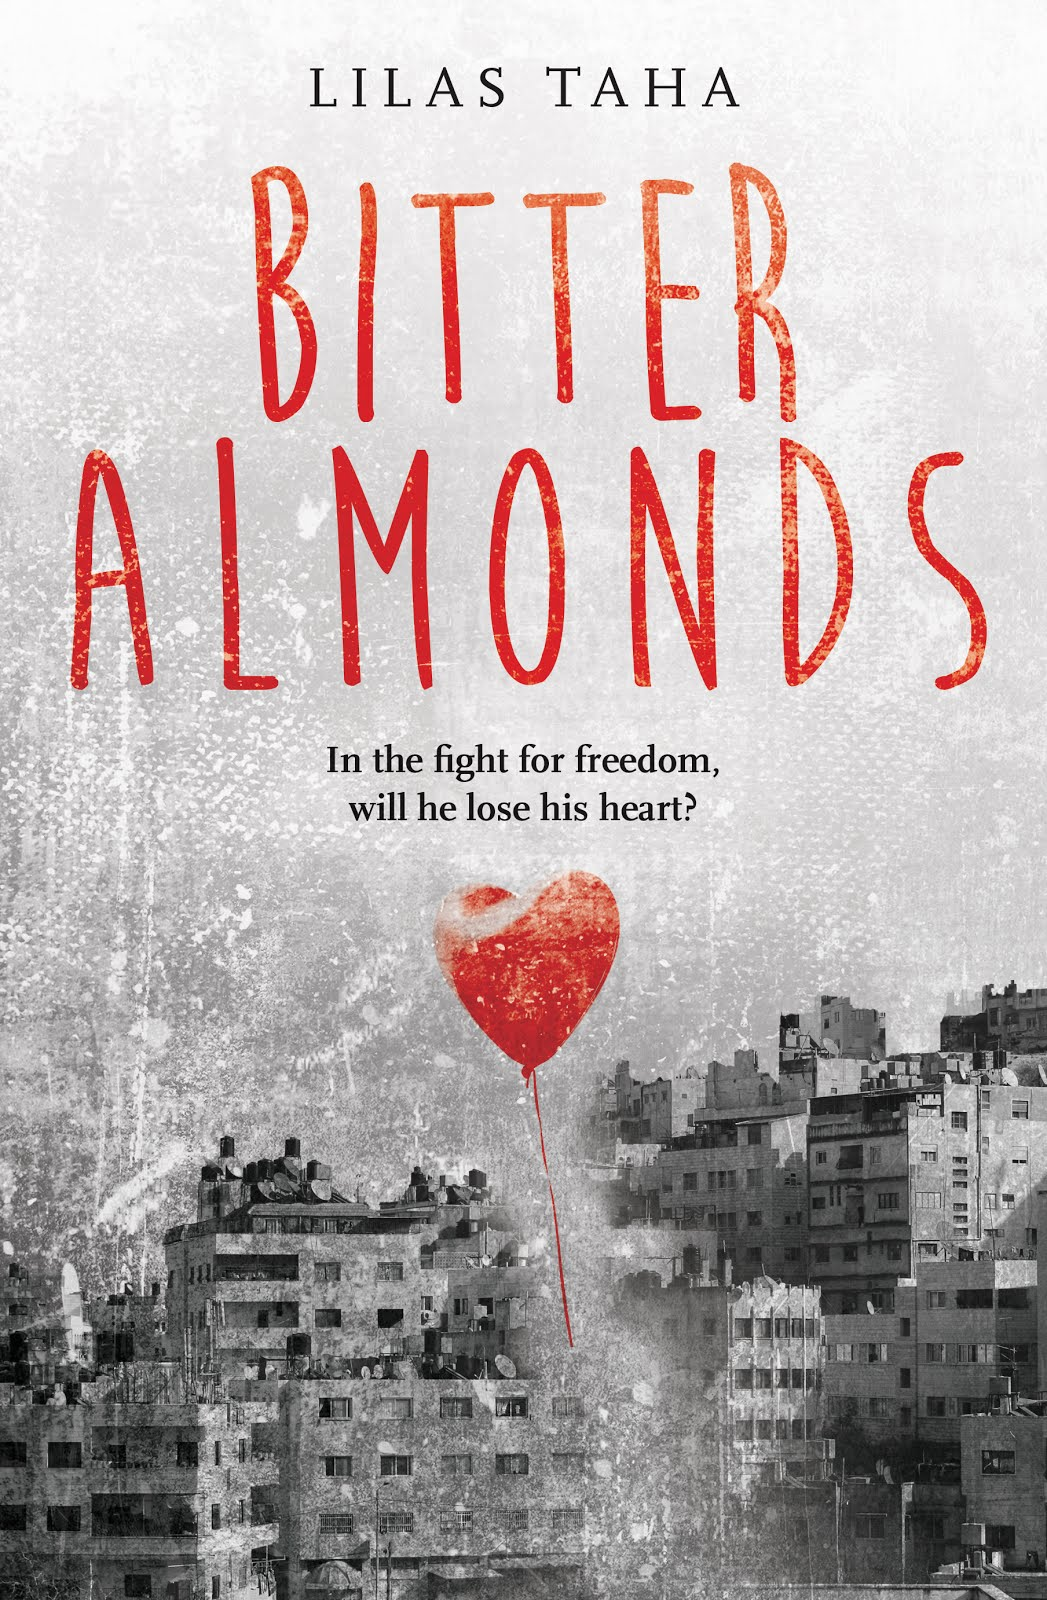 Click on book image to buy Bitter Almonds from Amazon